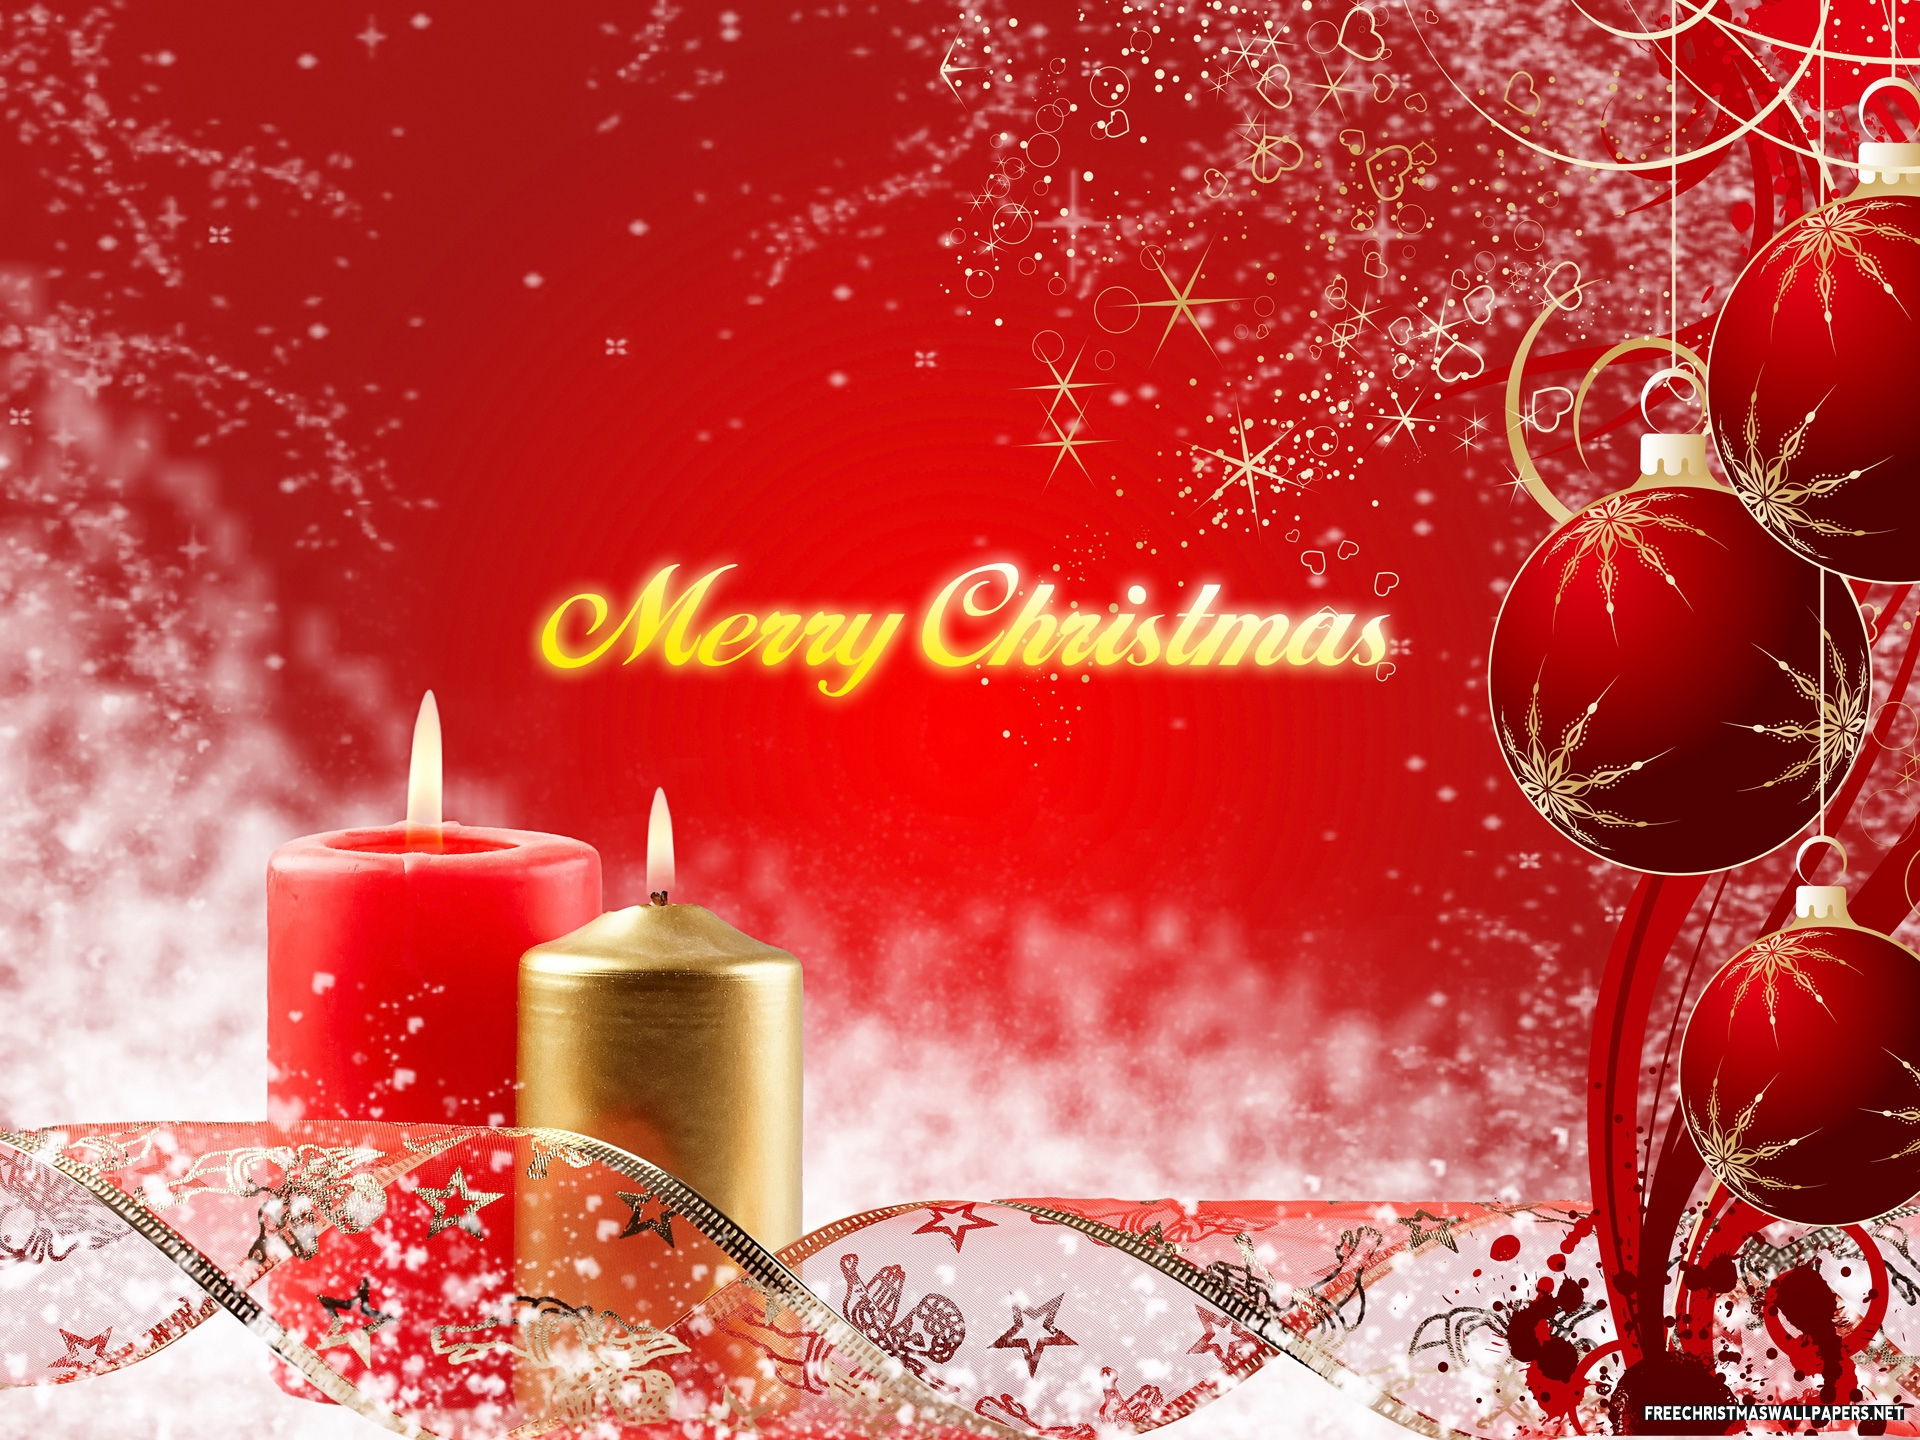 Merry Christmas Images Download.Merry Christmas Candles 218077 Free Download Borrow And